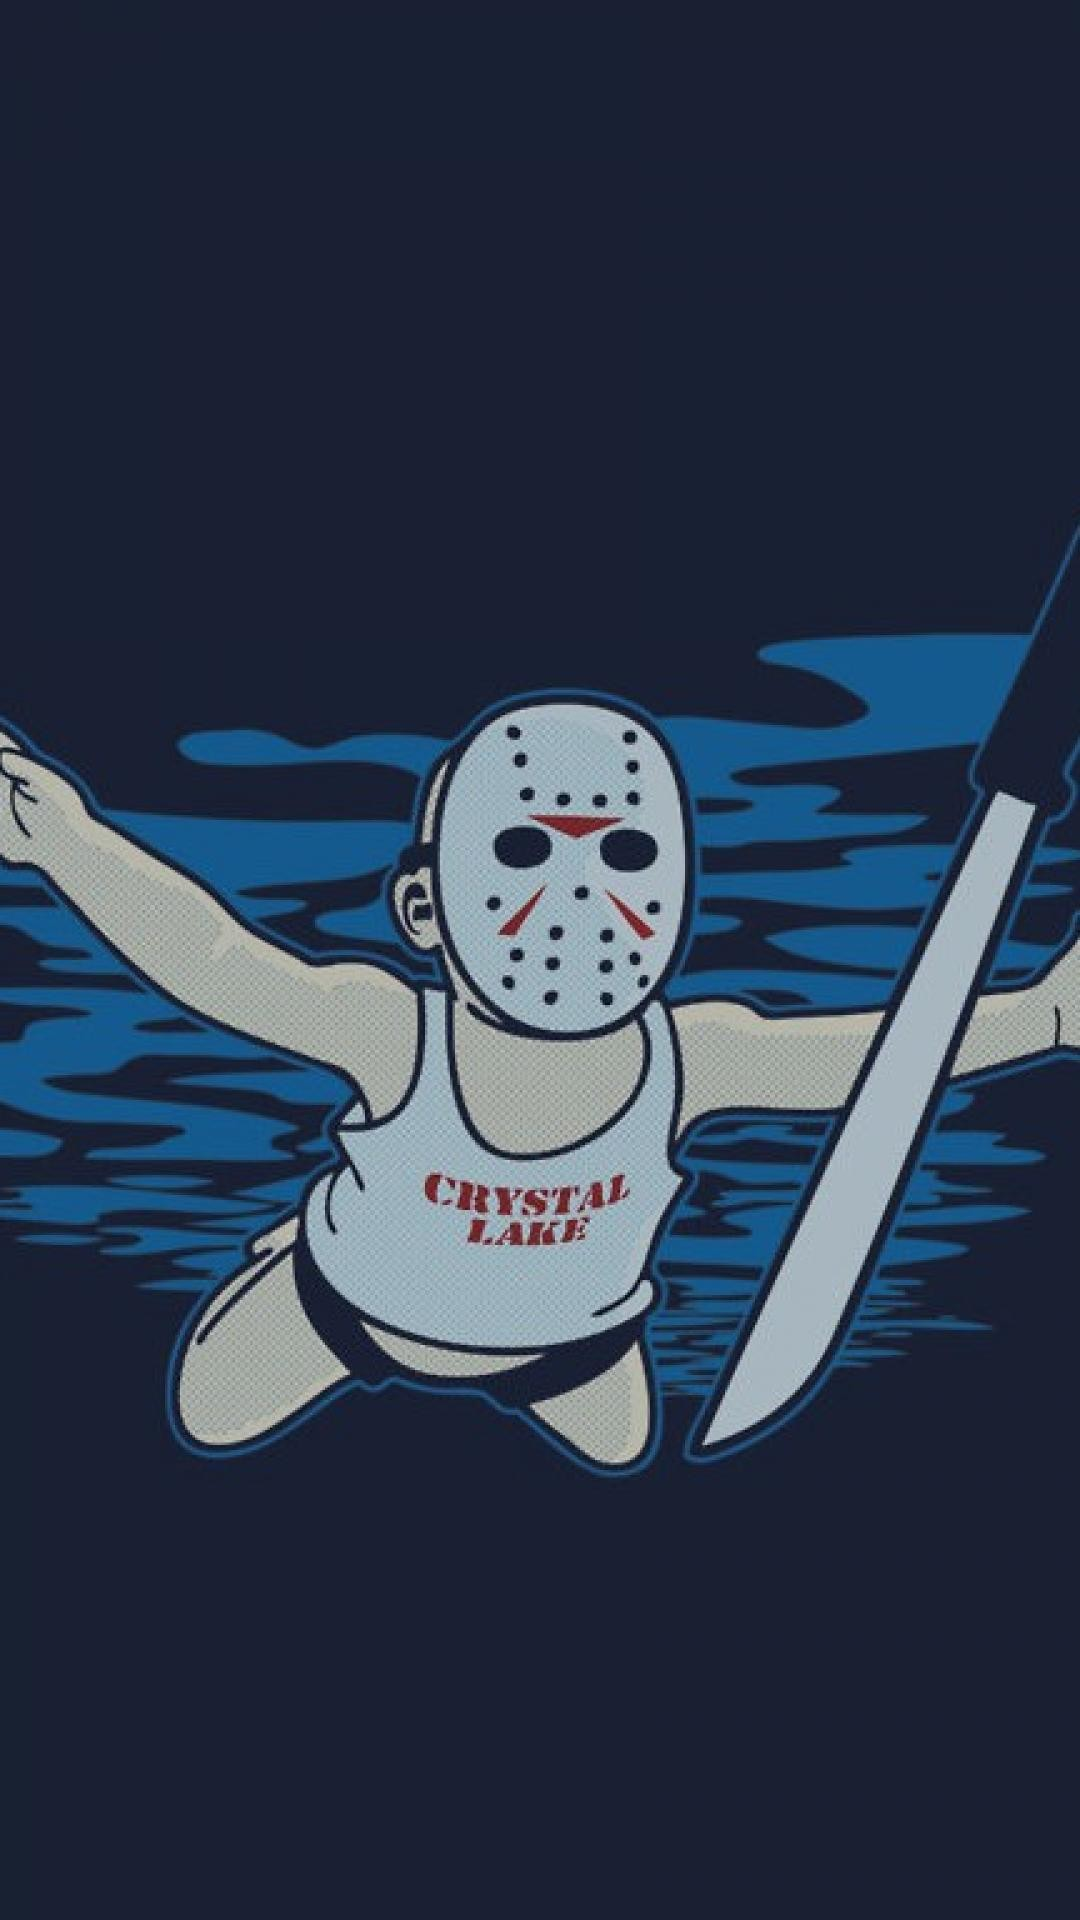 1080x1920 Jason Voorhees Wallpaper Android / Image Source